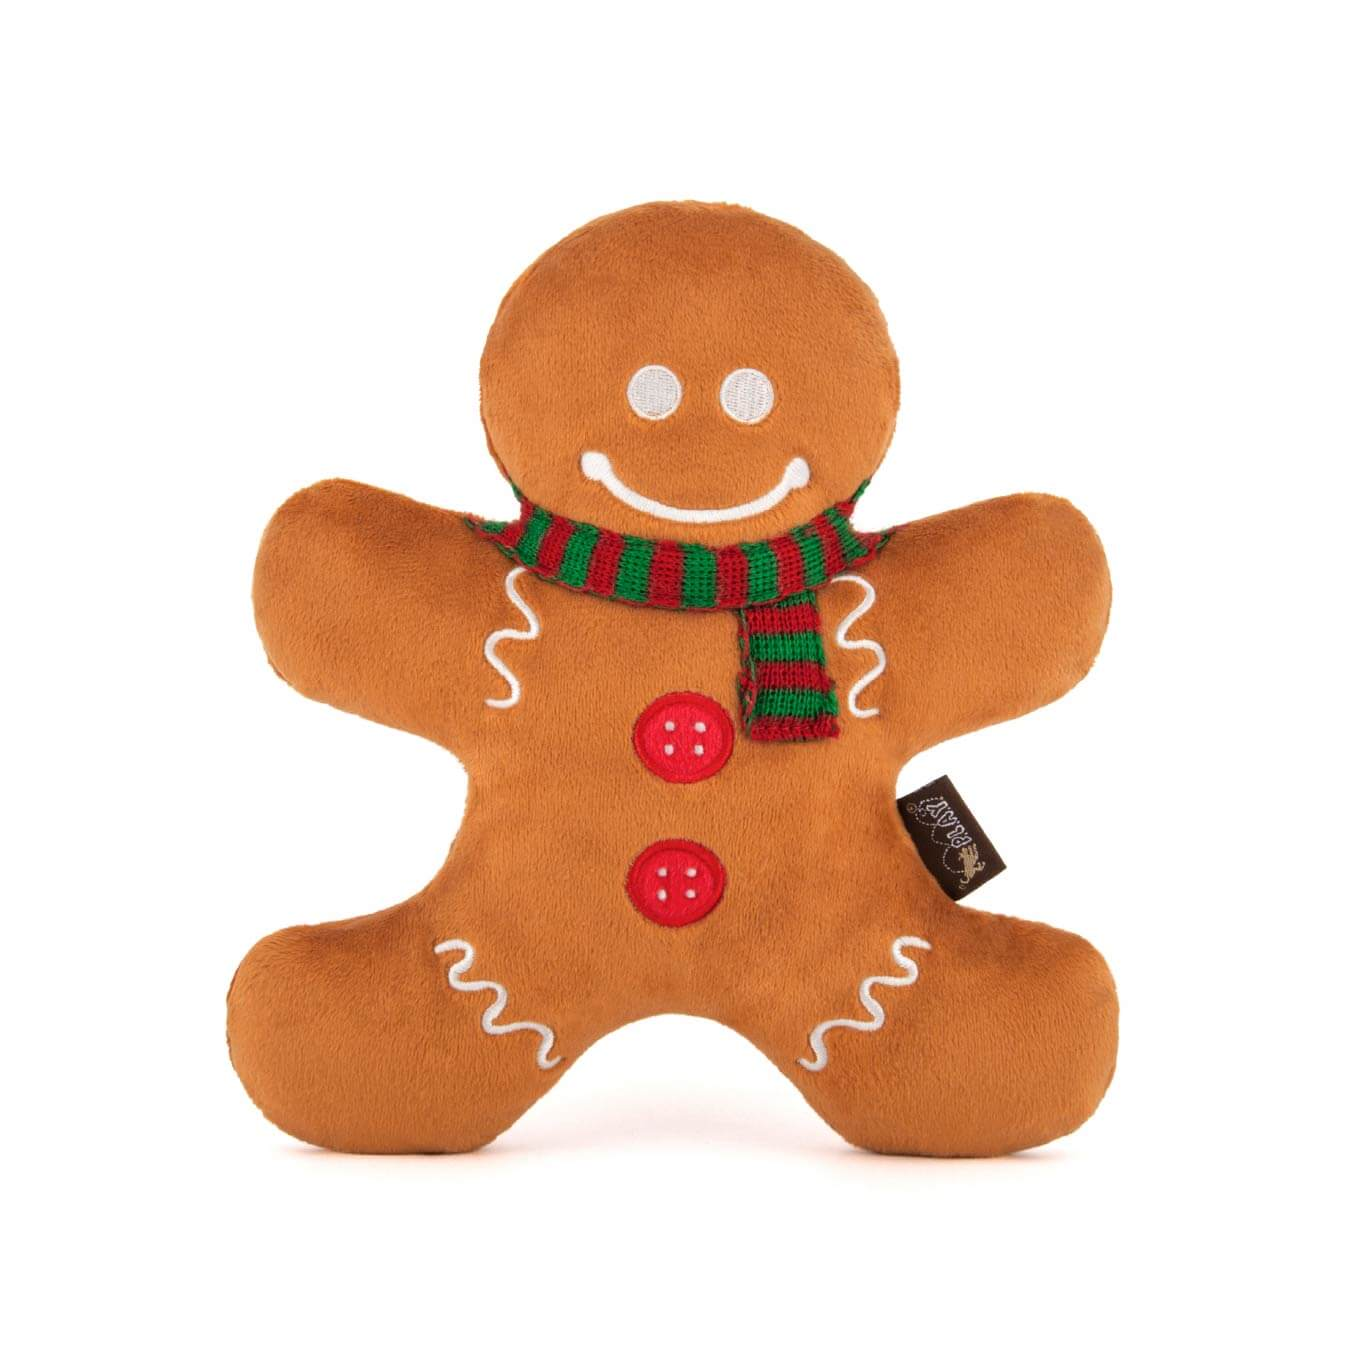 PLAY Holiday Classic Gingerbread Man Plush Toy - Vanillapup Online Pet Store